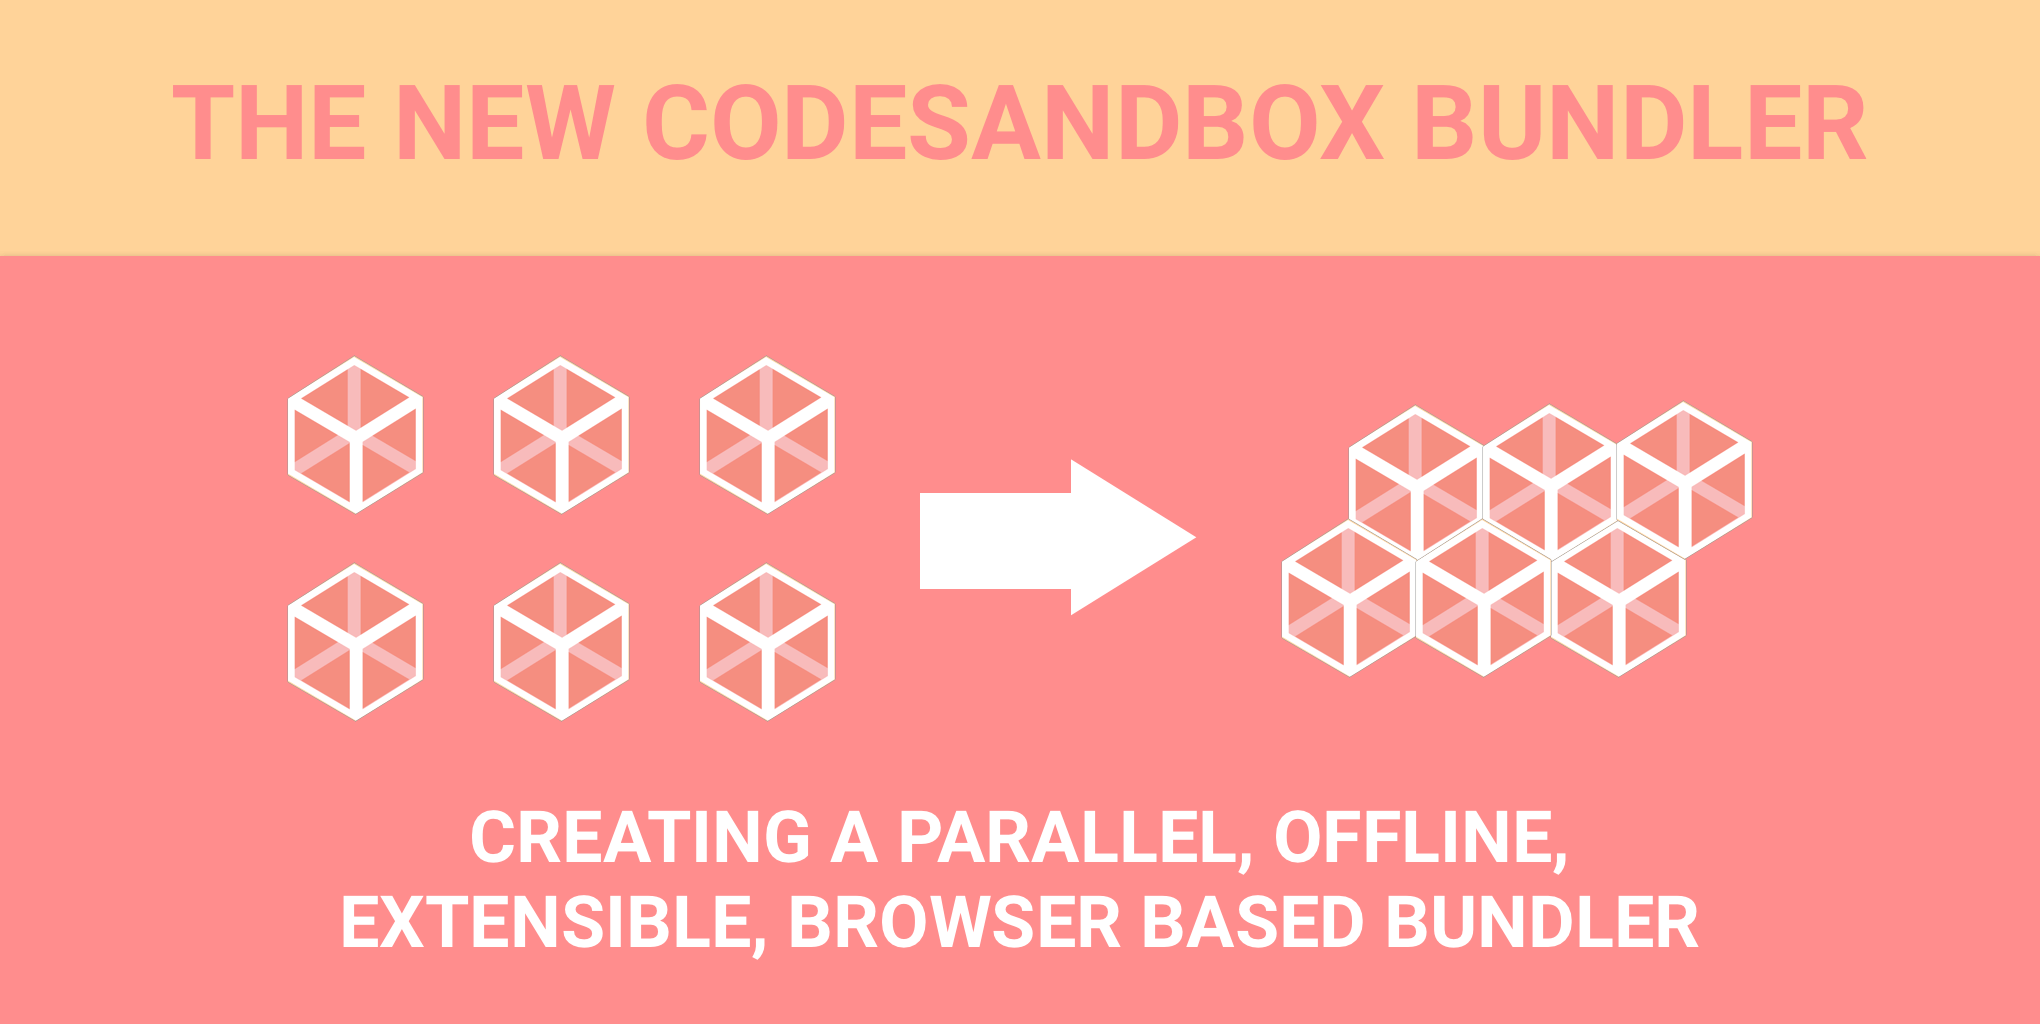 Creating a parallel, offline, extensible, browser based bundler for CodeSandbox